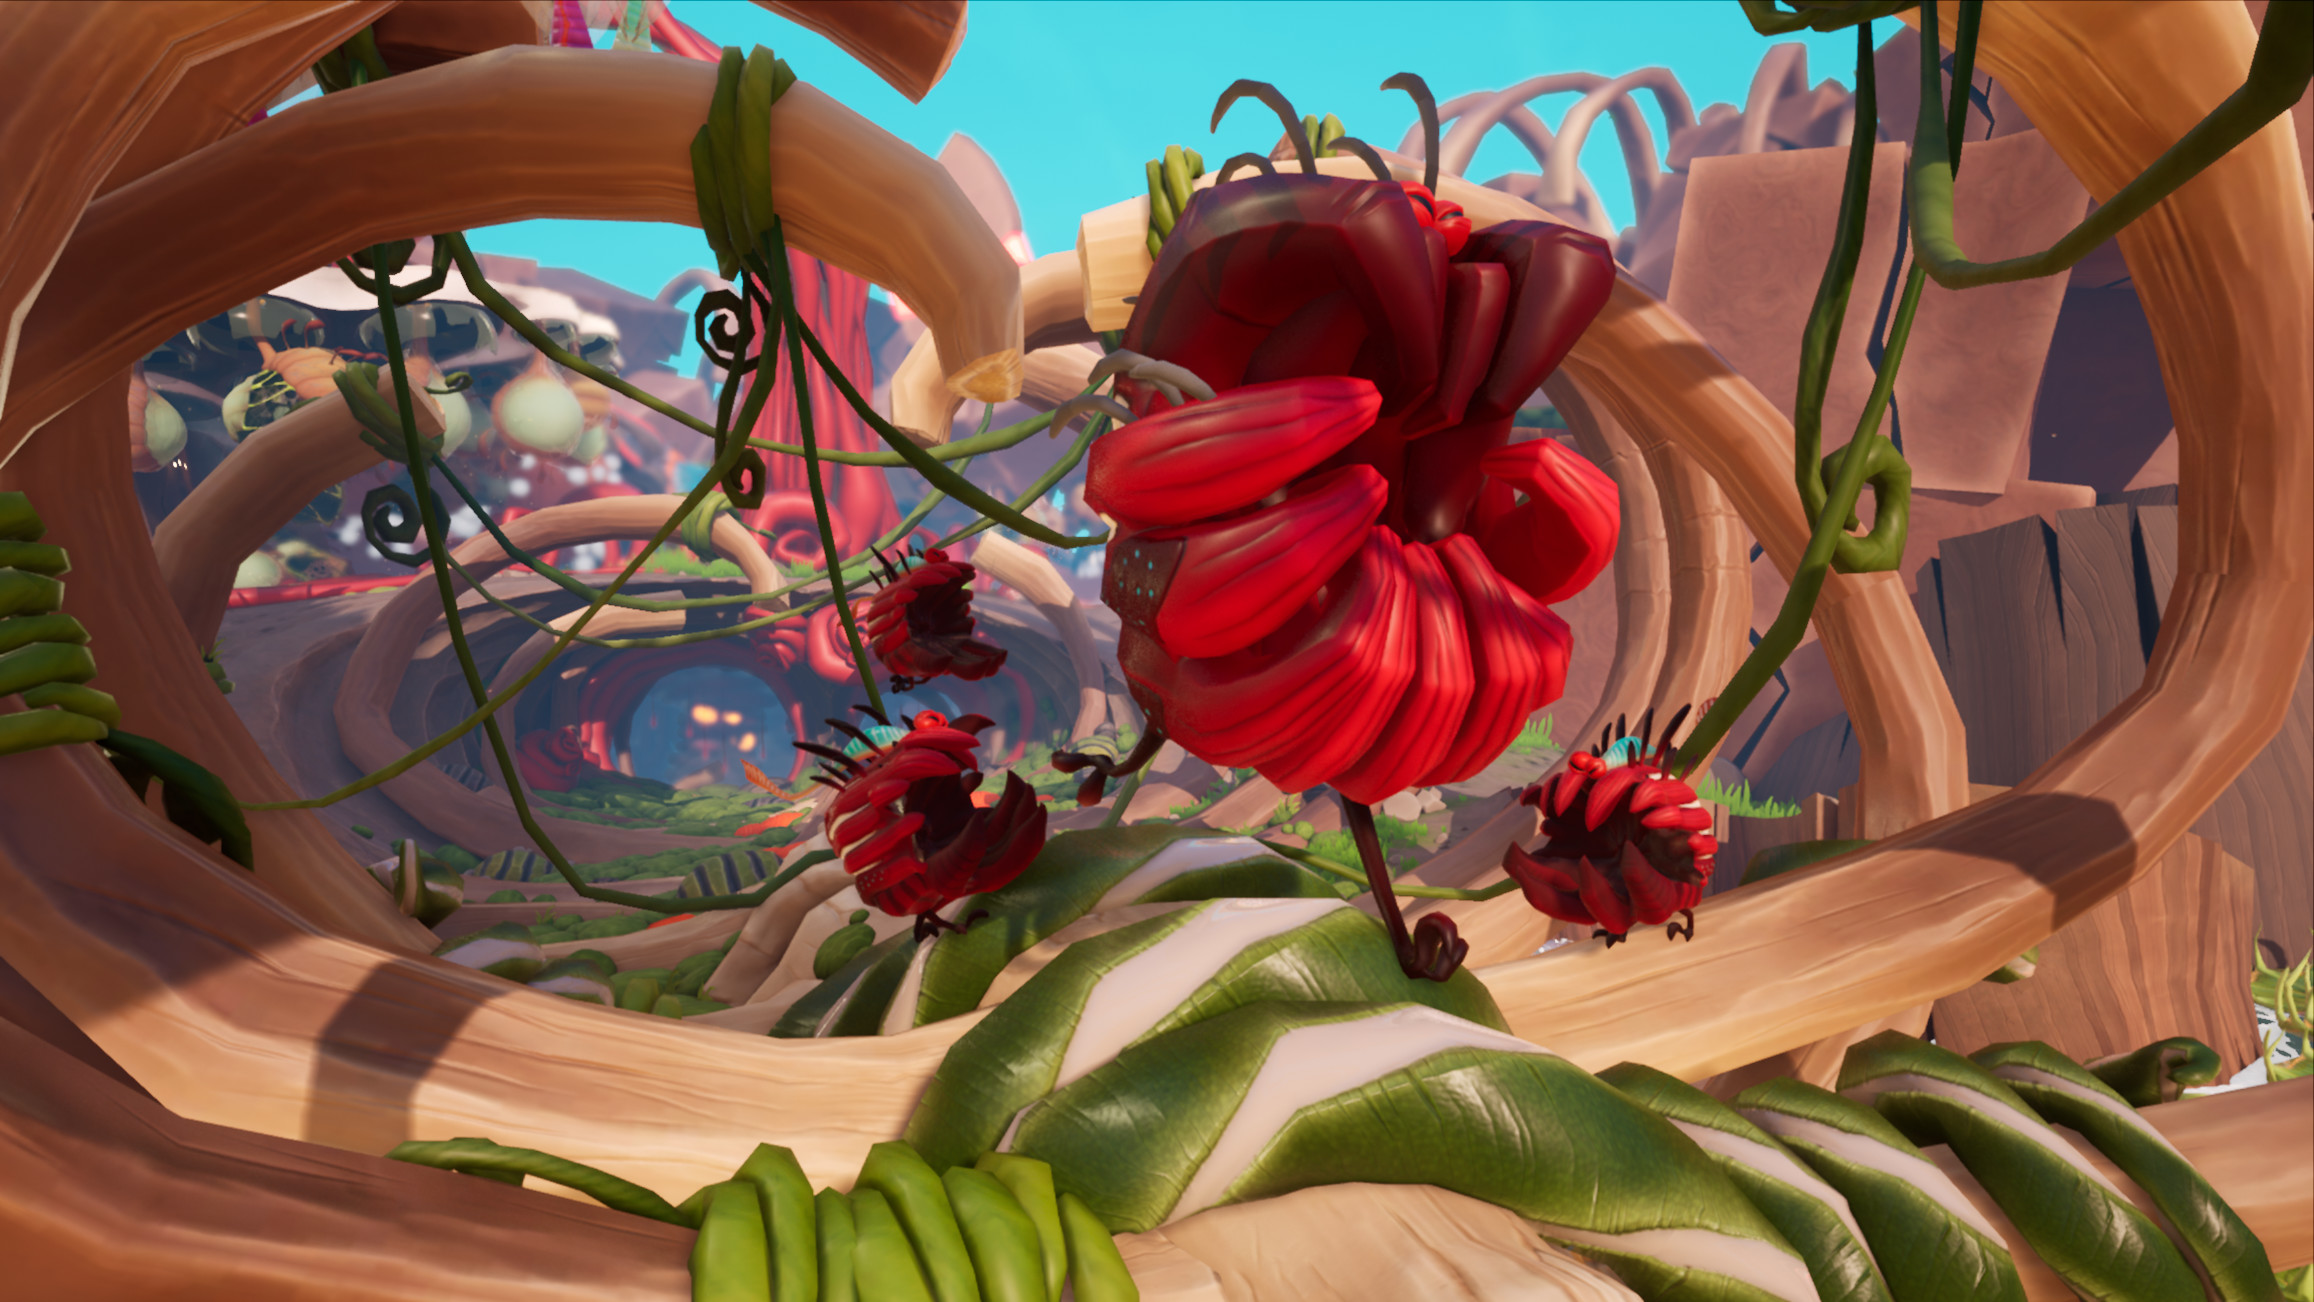 Flea Madness Is An Upcoming Bug Themed Multiplayer Brawler Headed For PC, PlayStation 5, and Xbox Series X